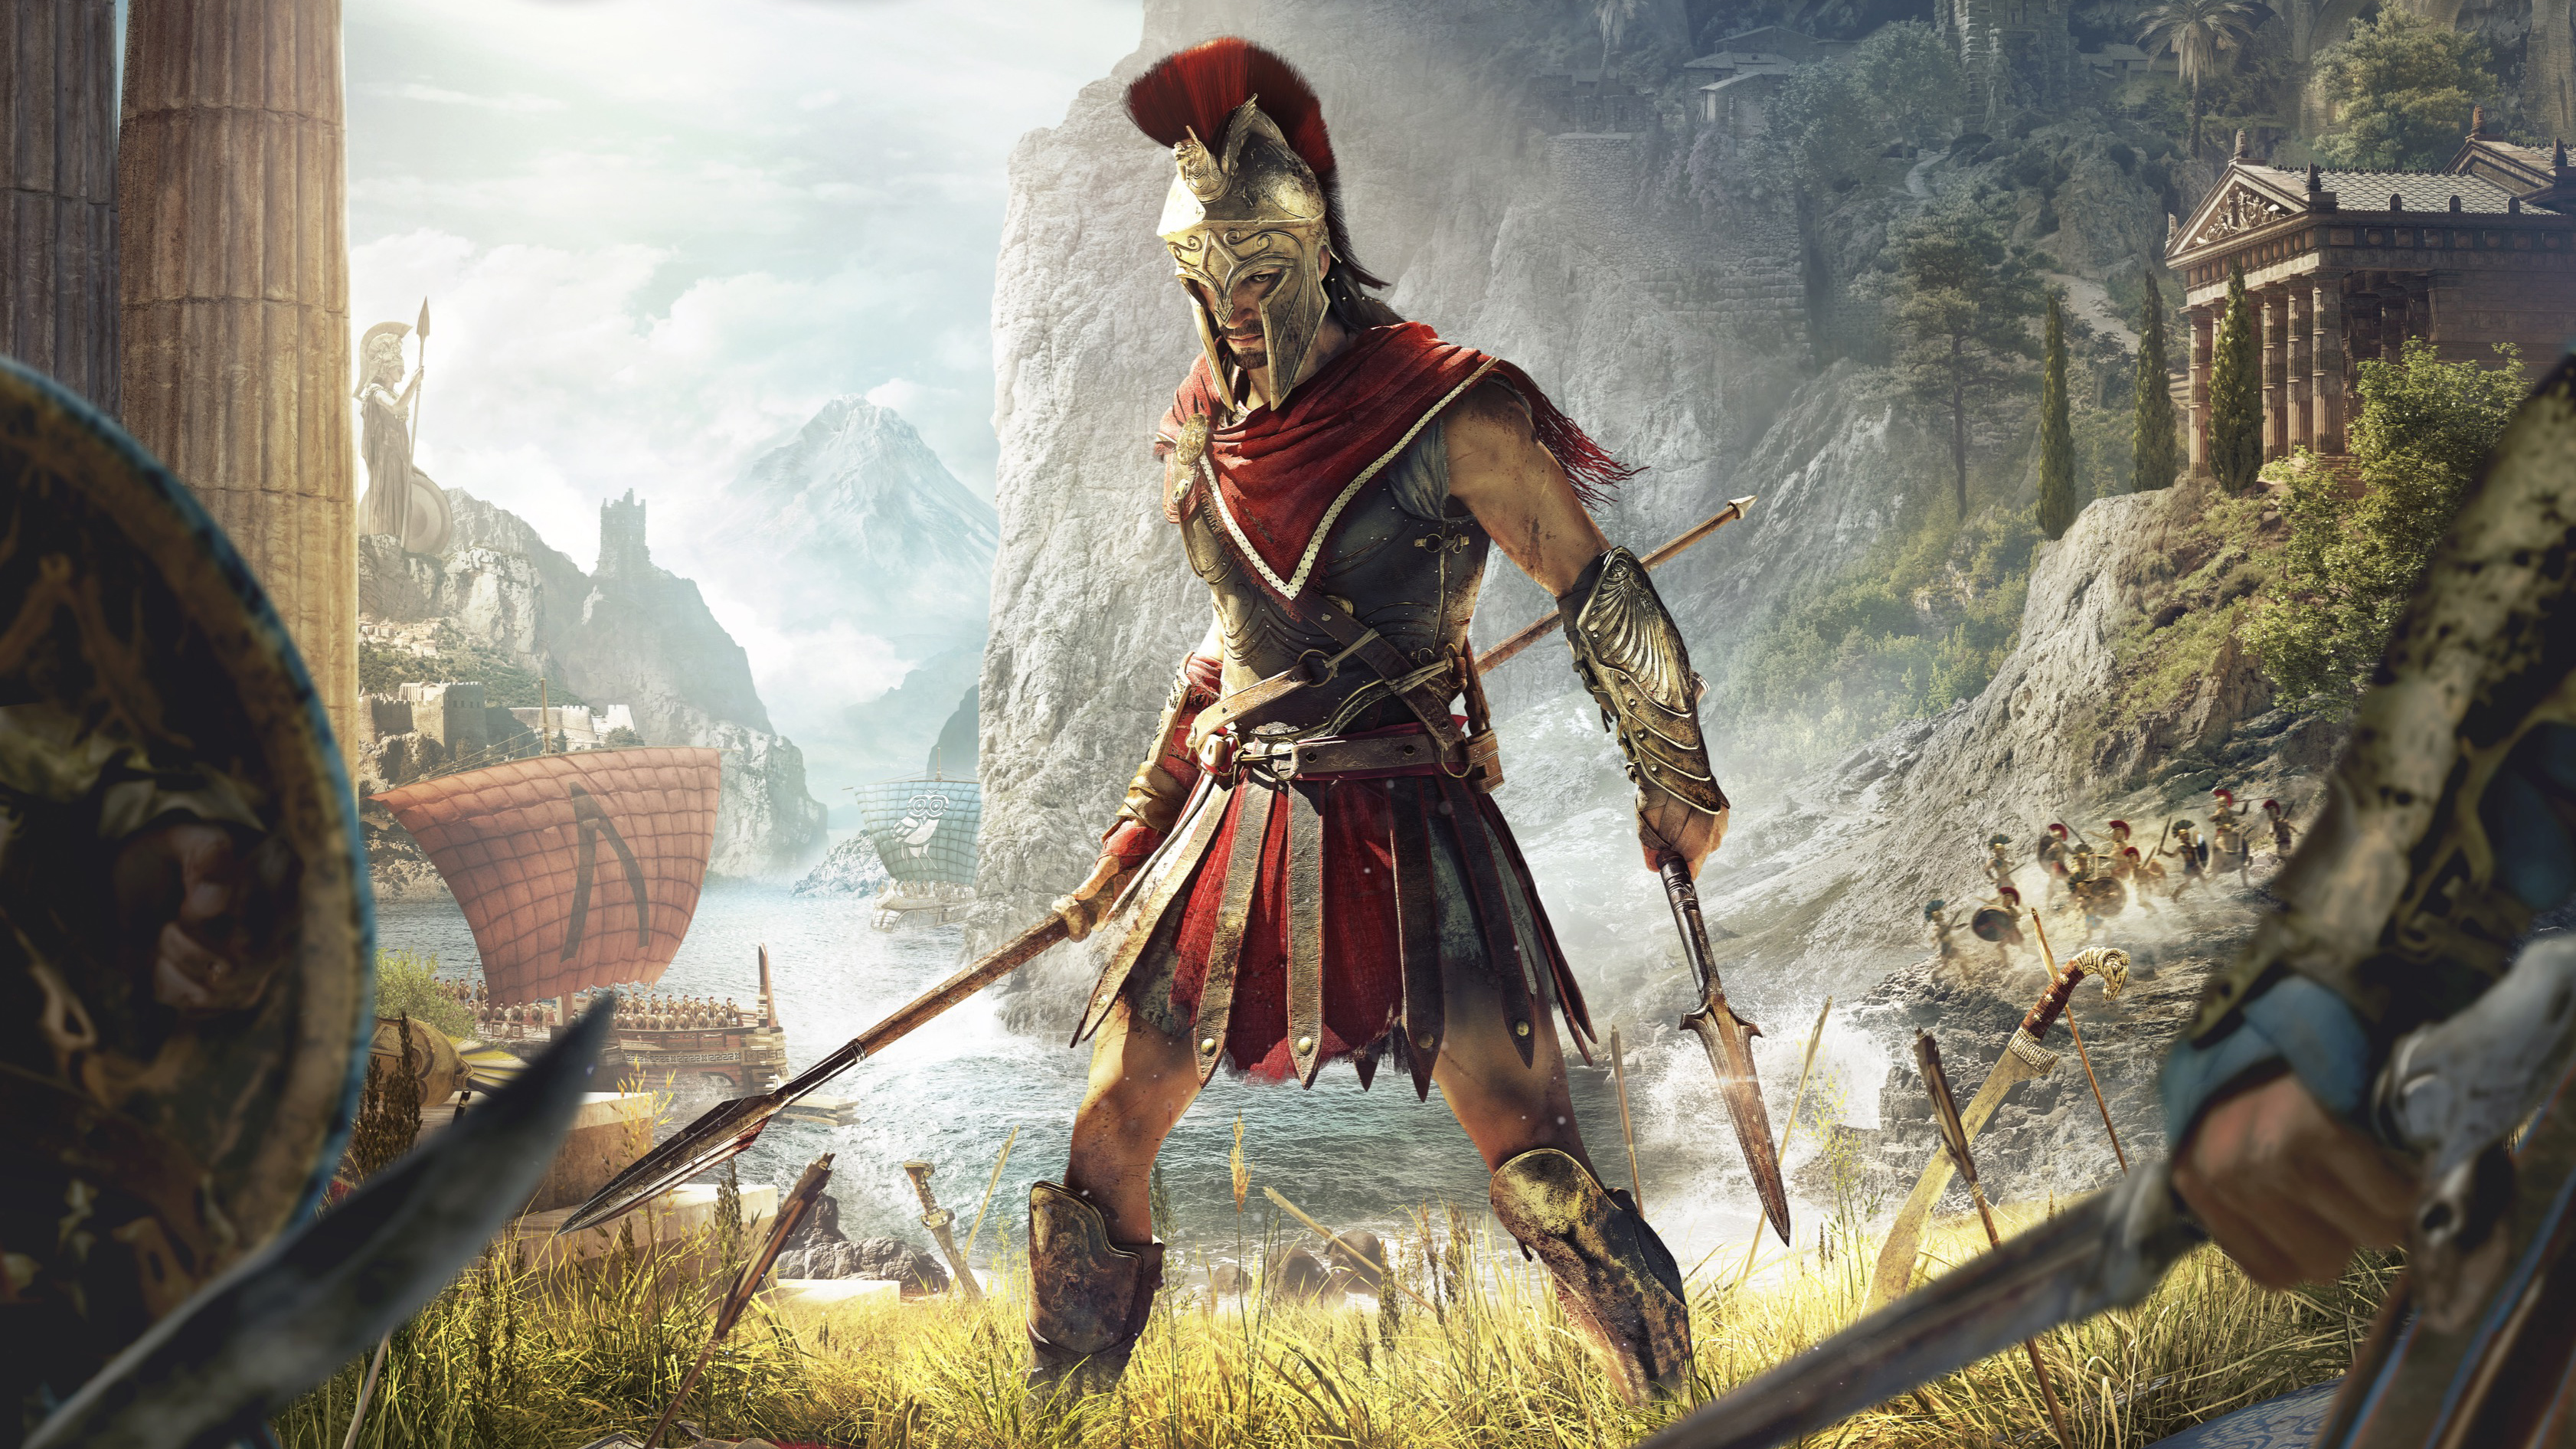 Assassins Creed Odyssey 4k Hd Games 4k Wallpapers Images